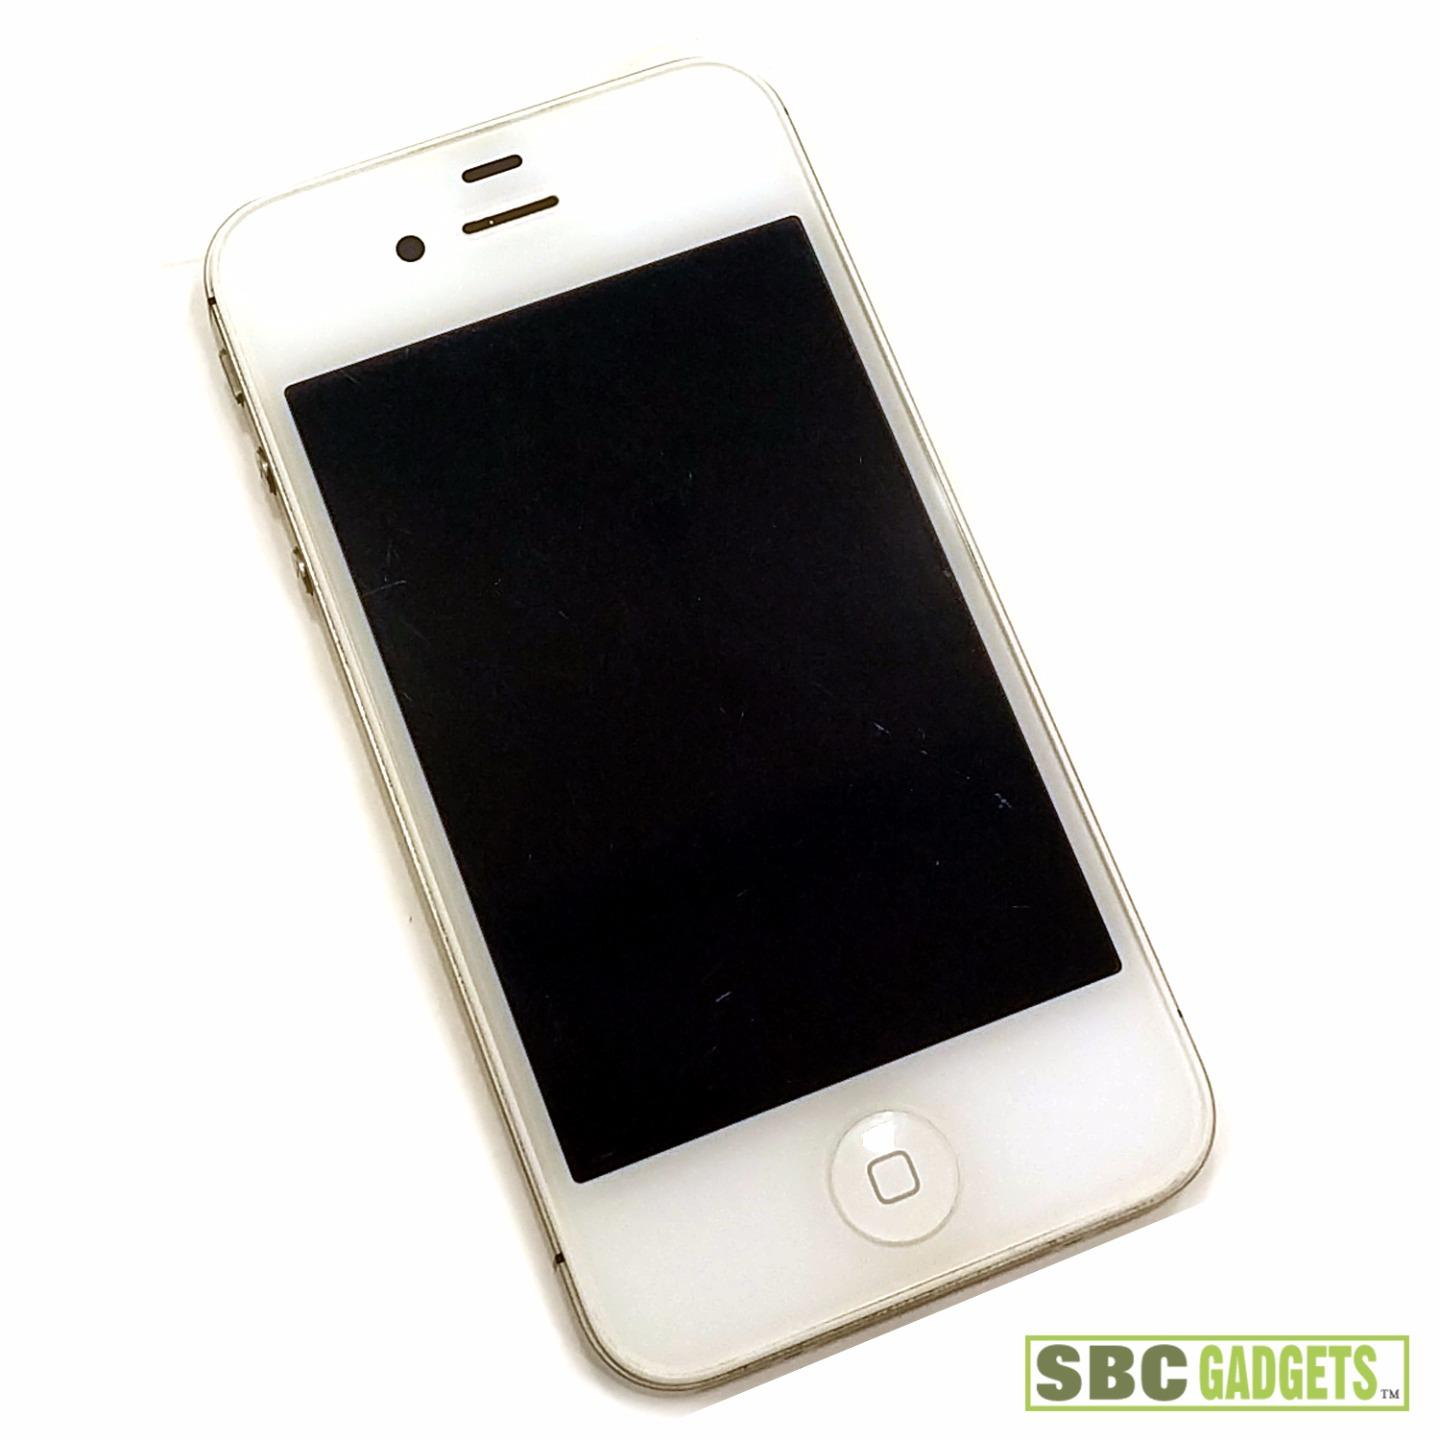 model a1387 iphone for parts apple iphone 4s white blue screen failure 9472